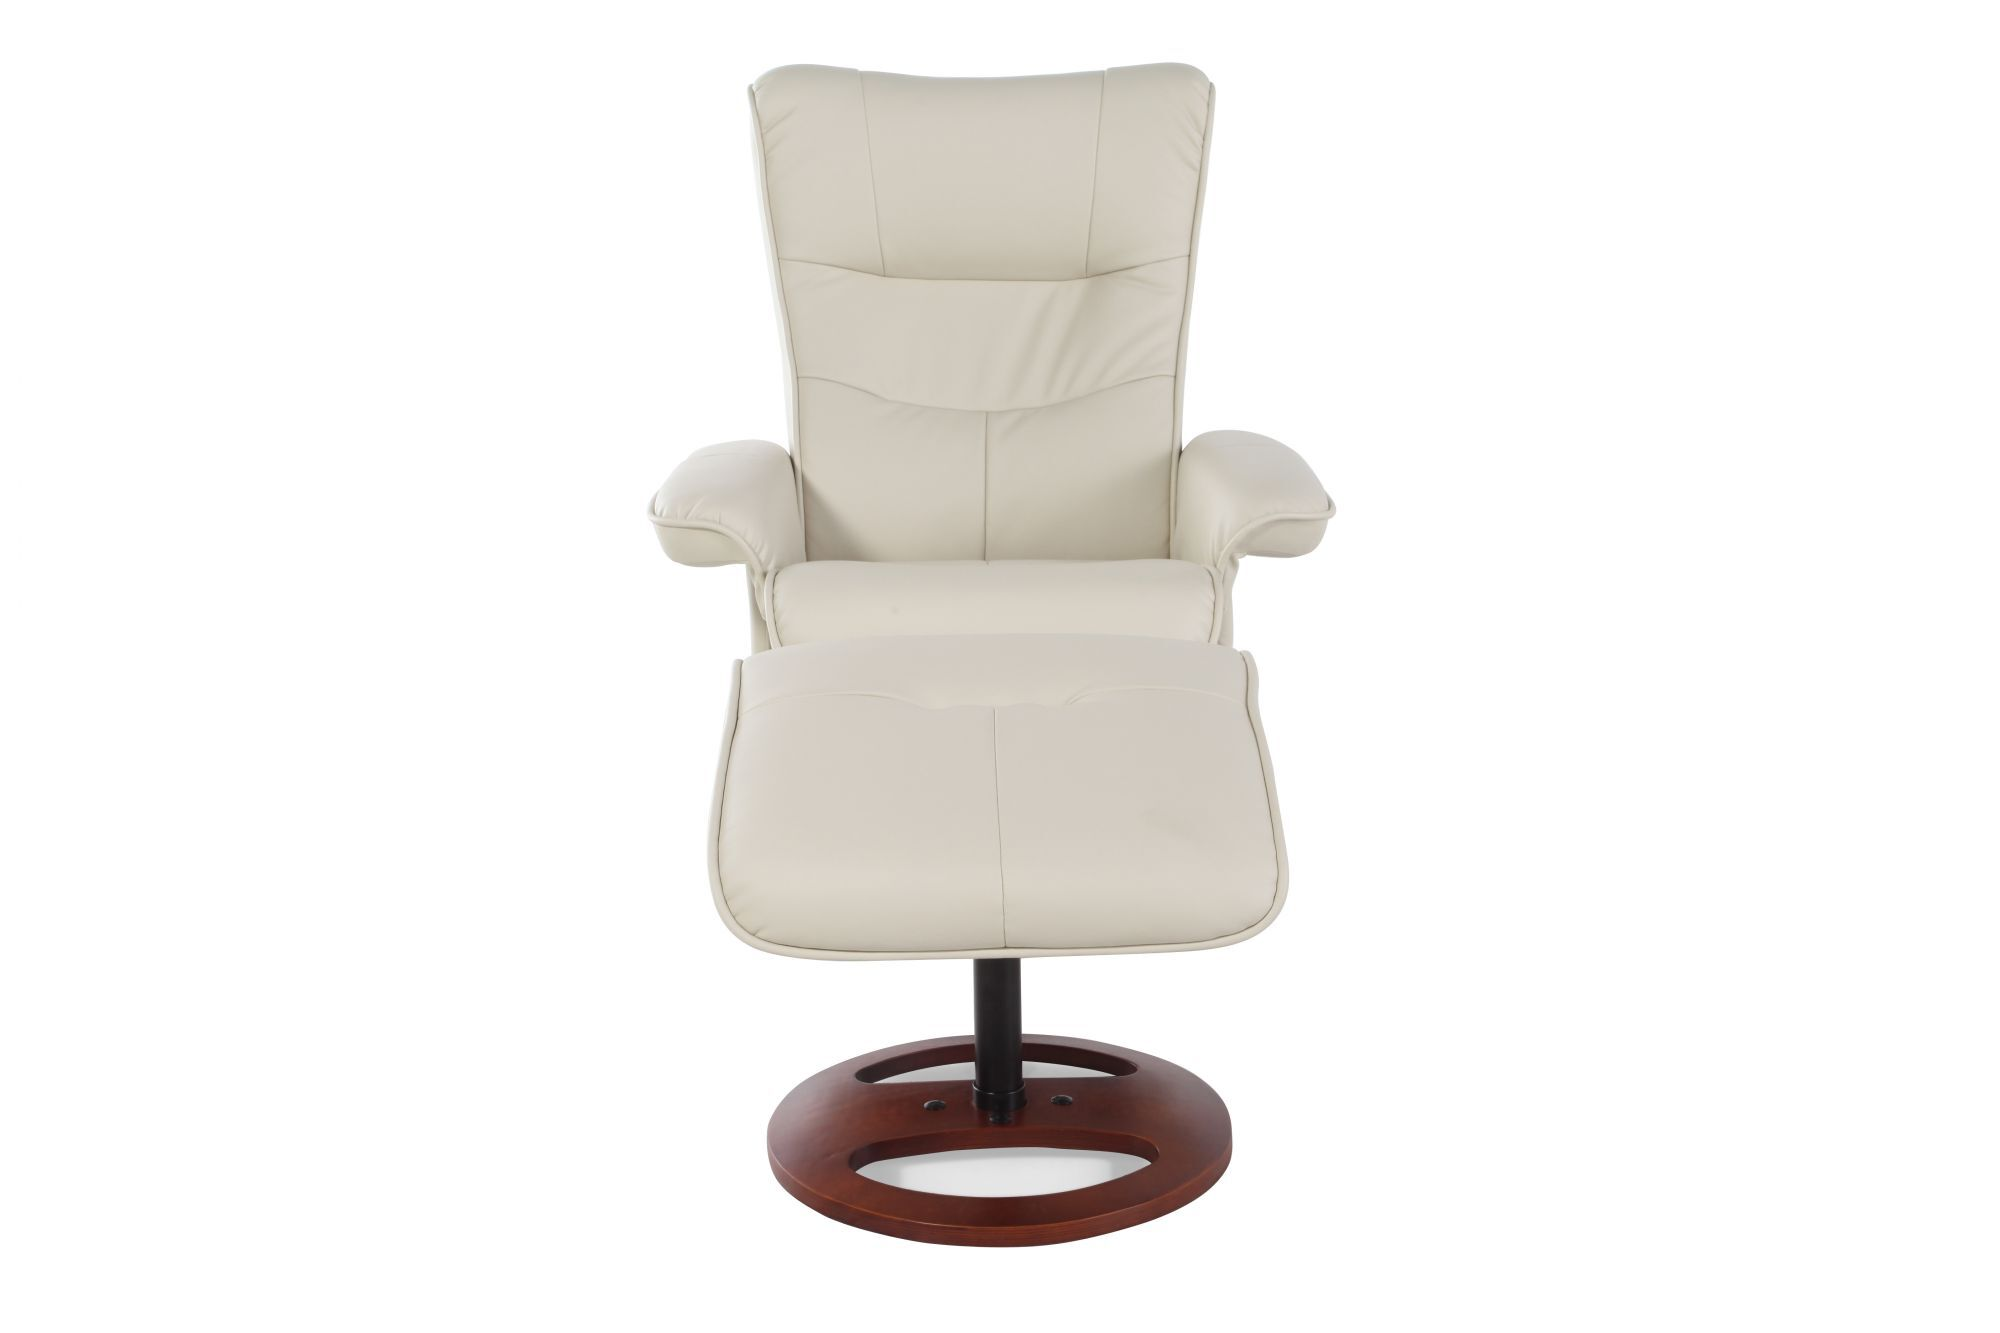 Reclining Chair And Ottoman Benchmaster Vanilla Reclining Chair And Ottoman Mathis